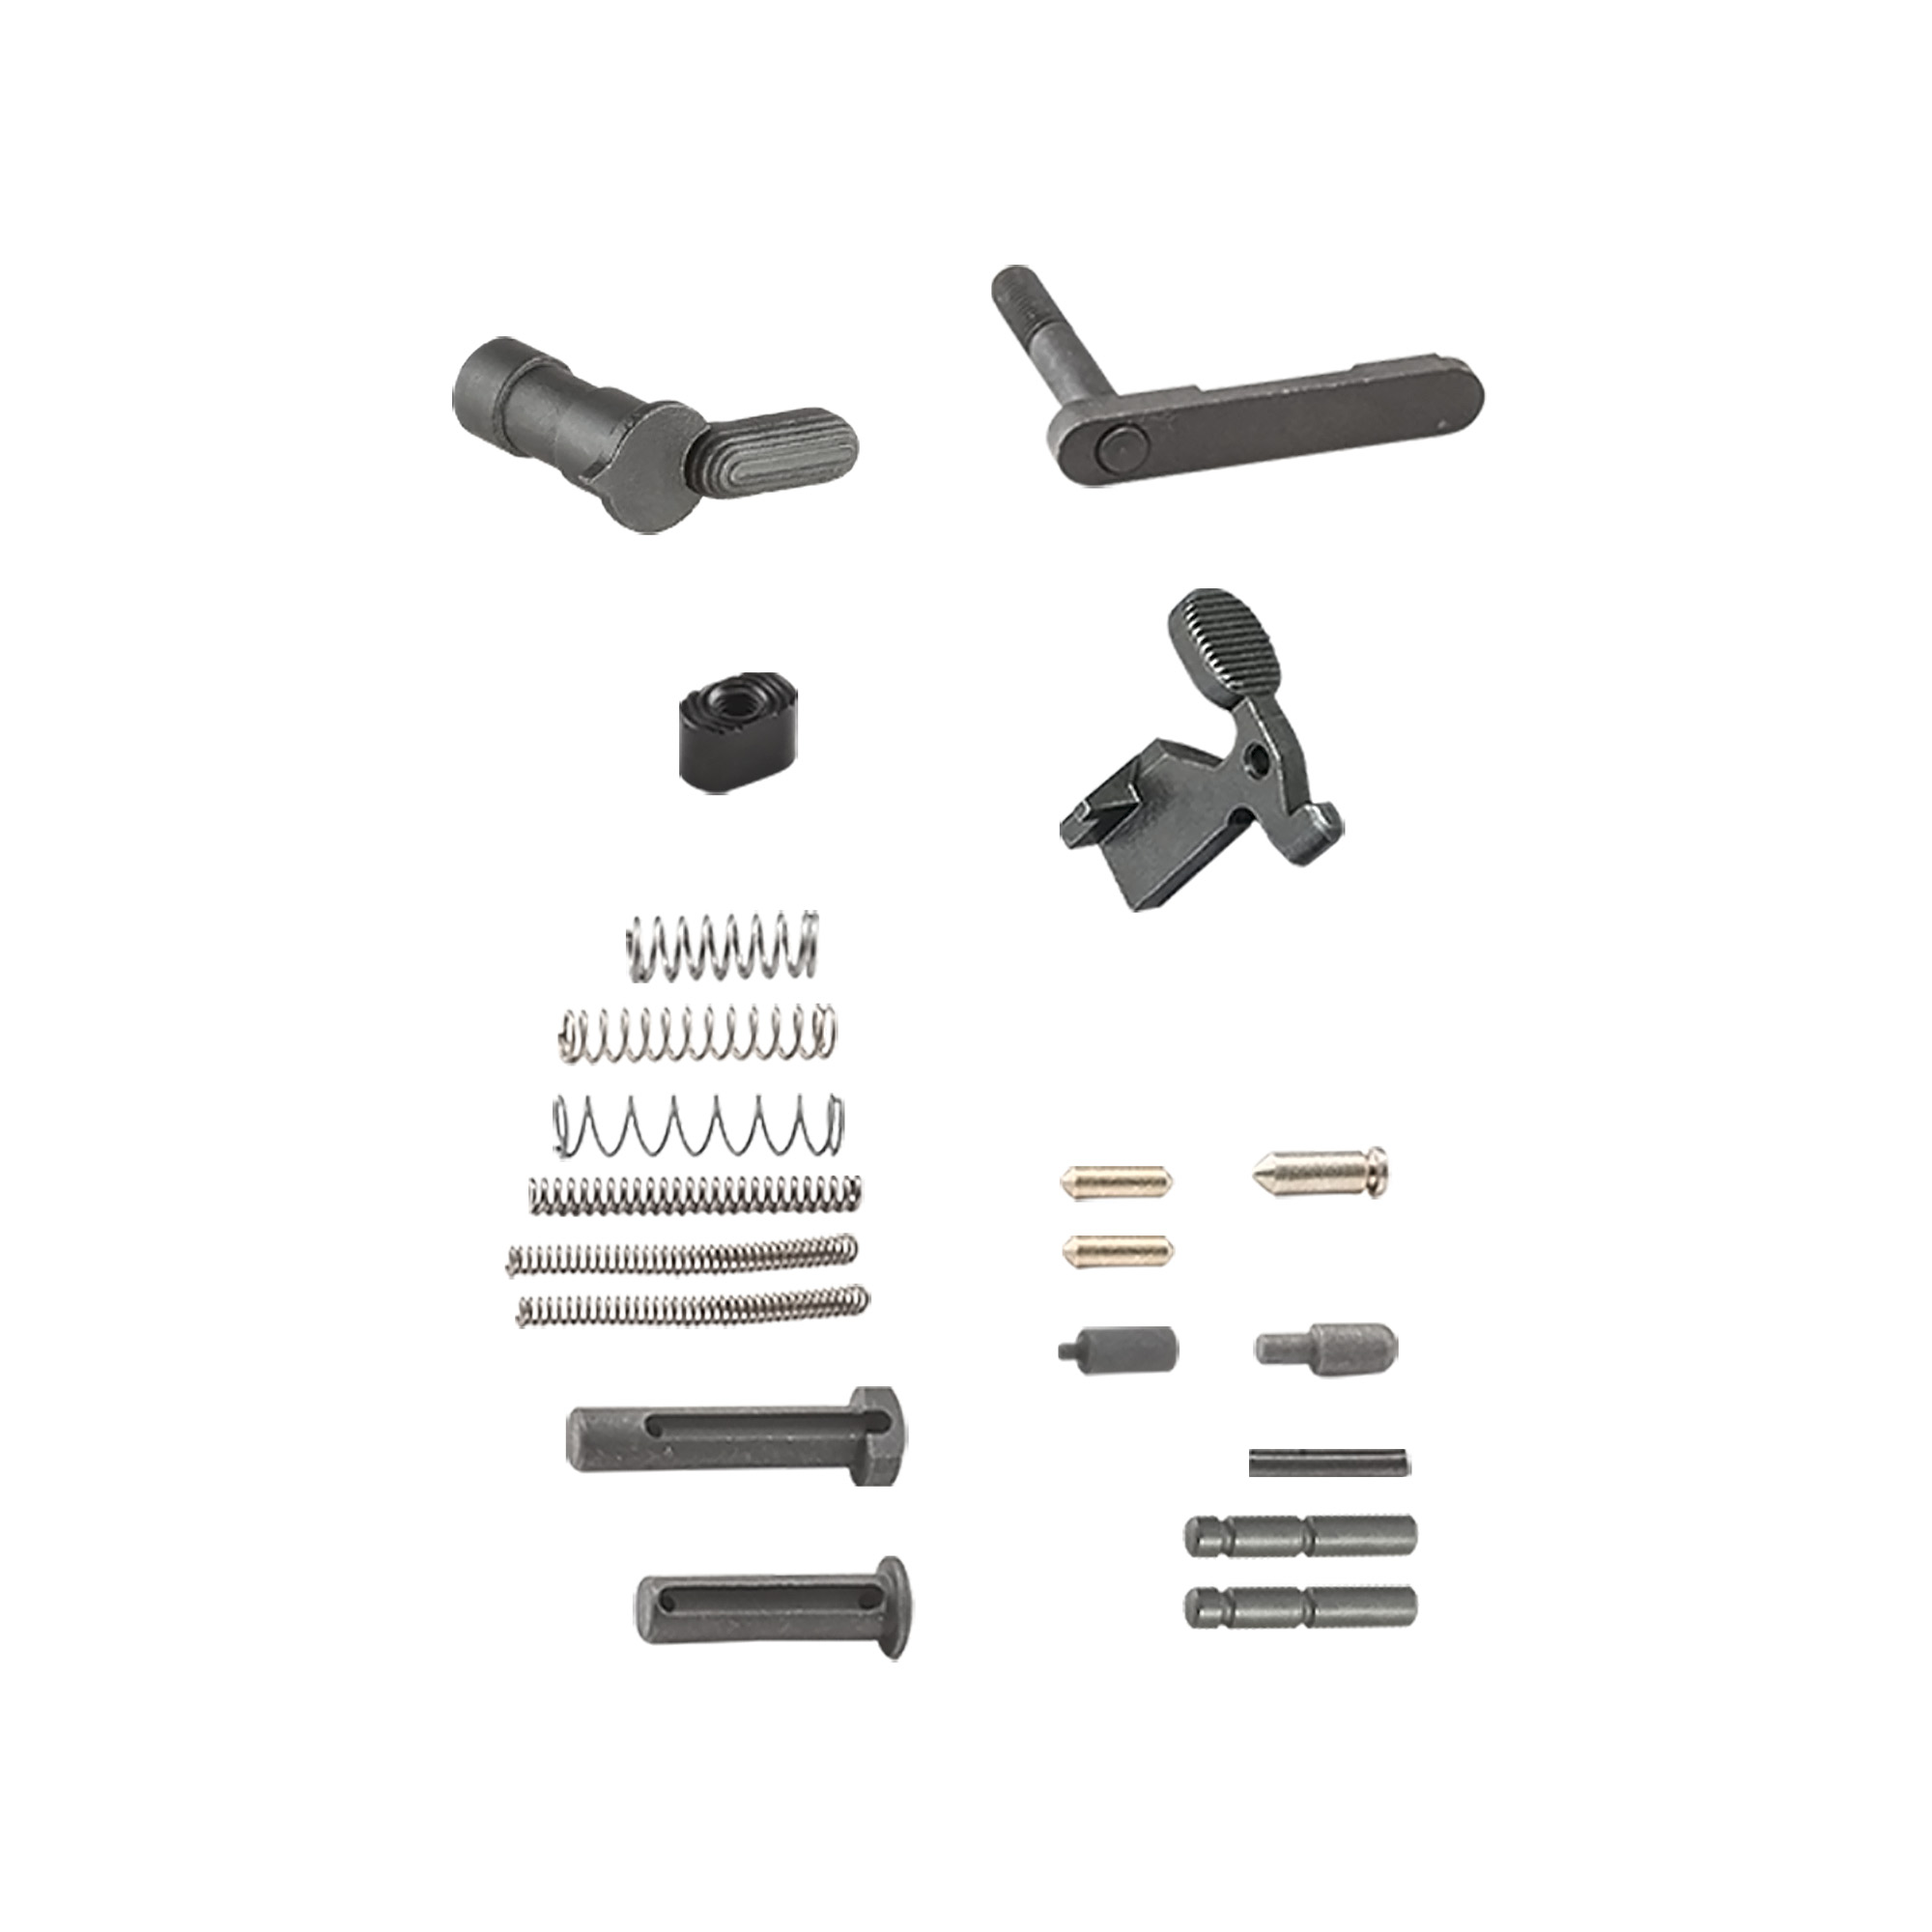 LUTH-AR builder parts kit for AR-15 lower.